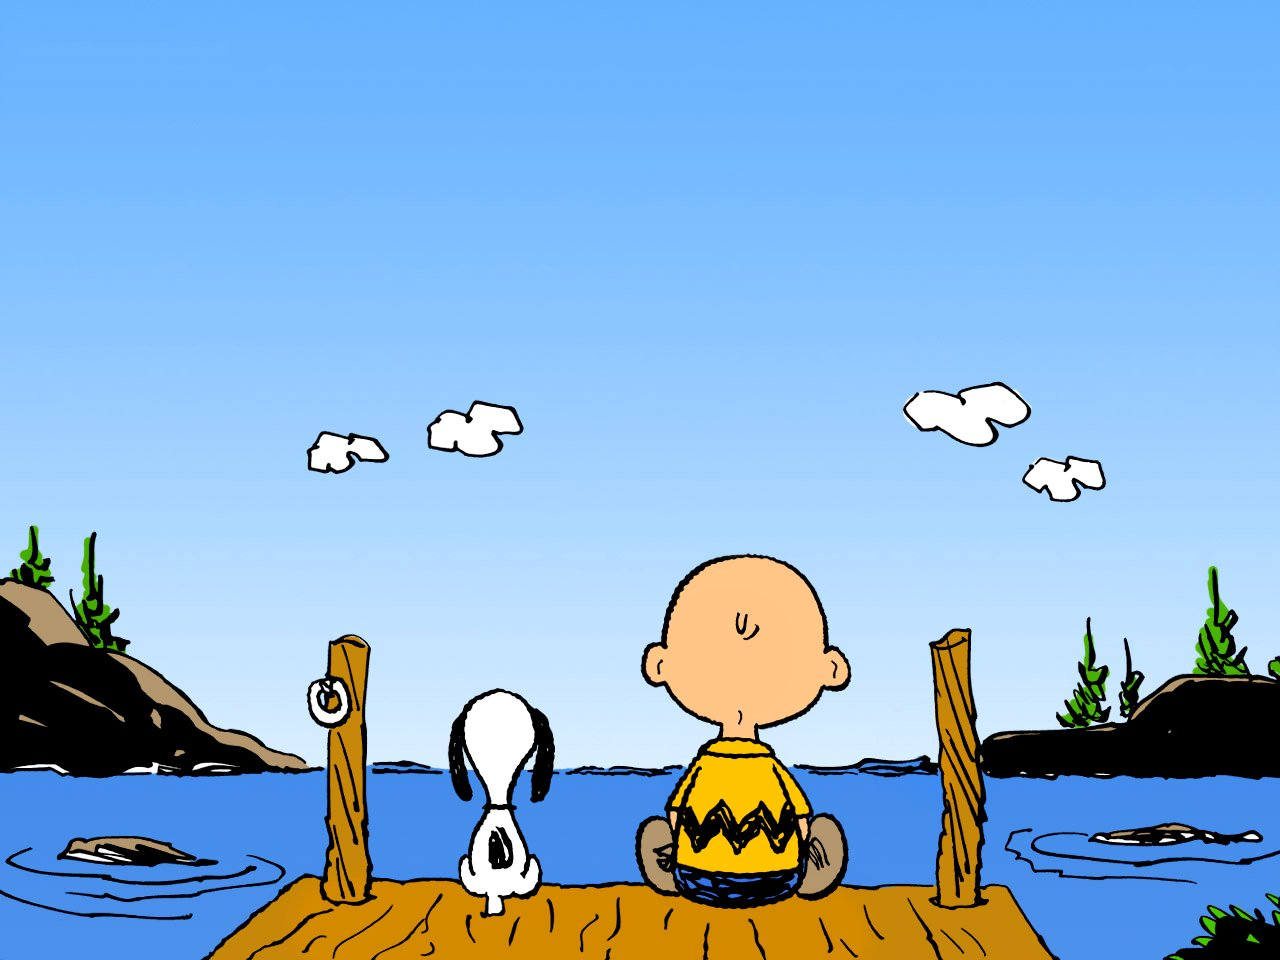 Snoopy Charlie Wallpaper 1280x960 Snoopy Charlie Brown Peanuts 1280x960